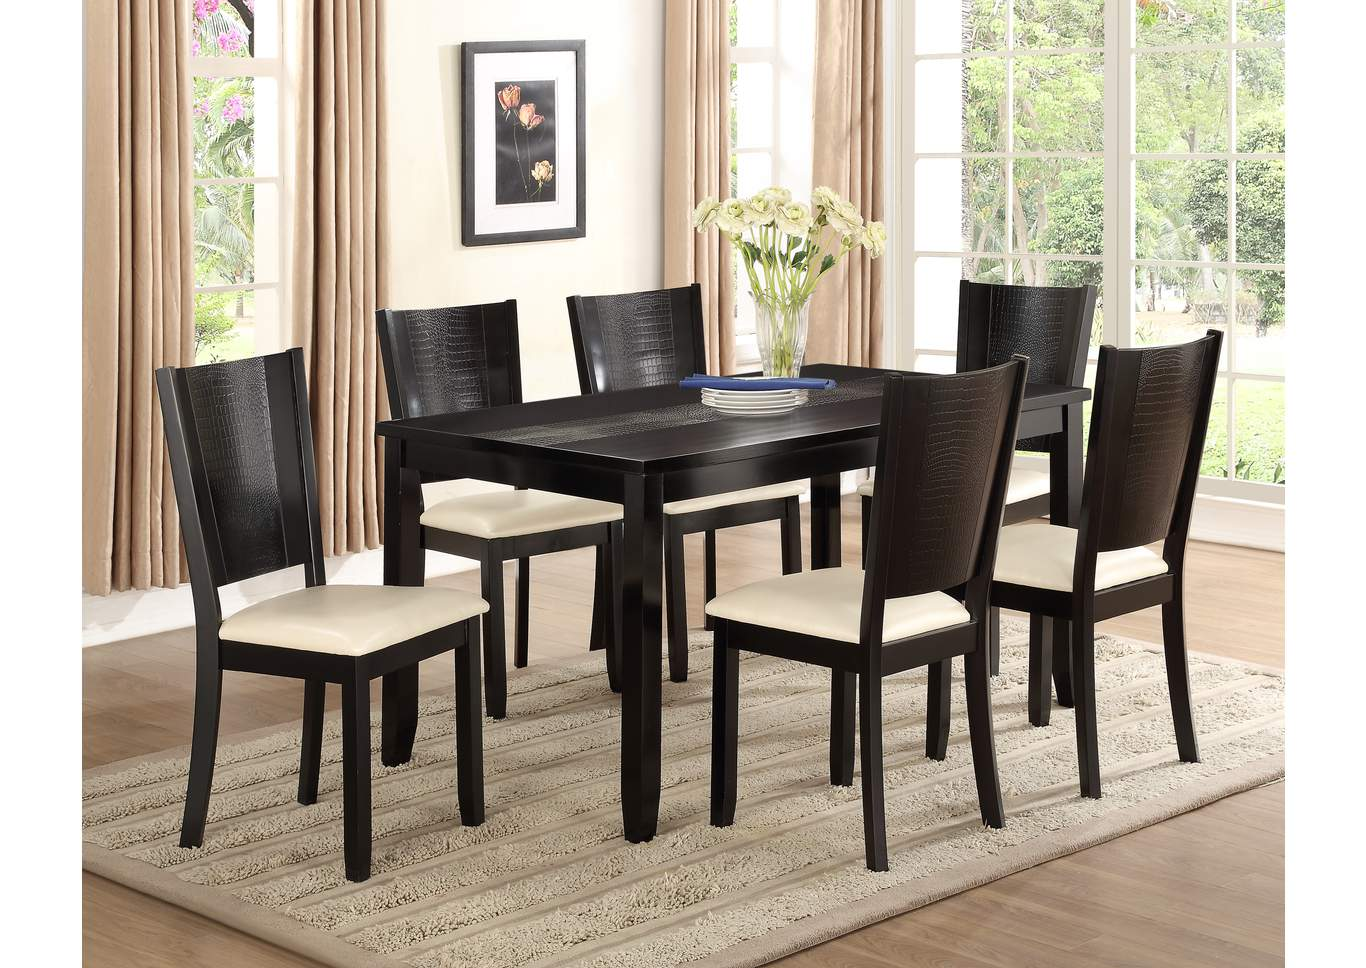 Hanson Dining Table w/ 6 Side Chairs,Crown Mark